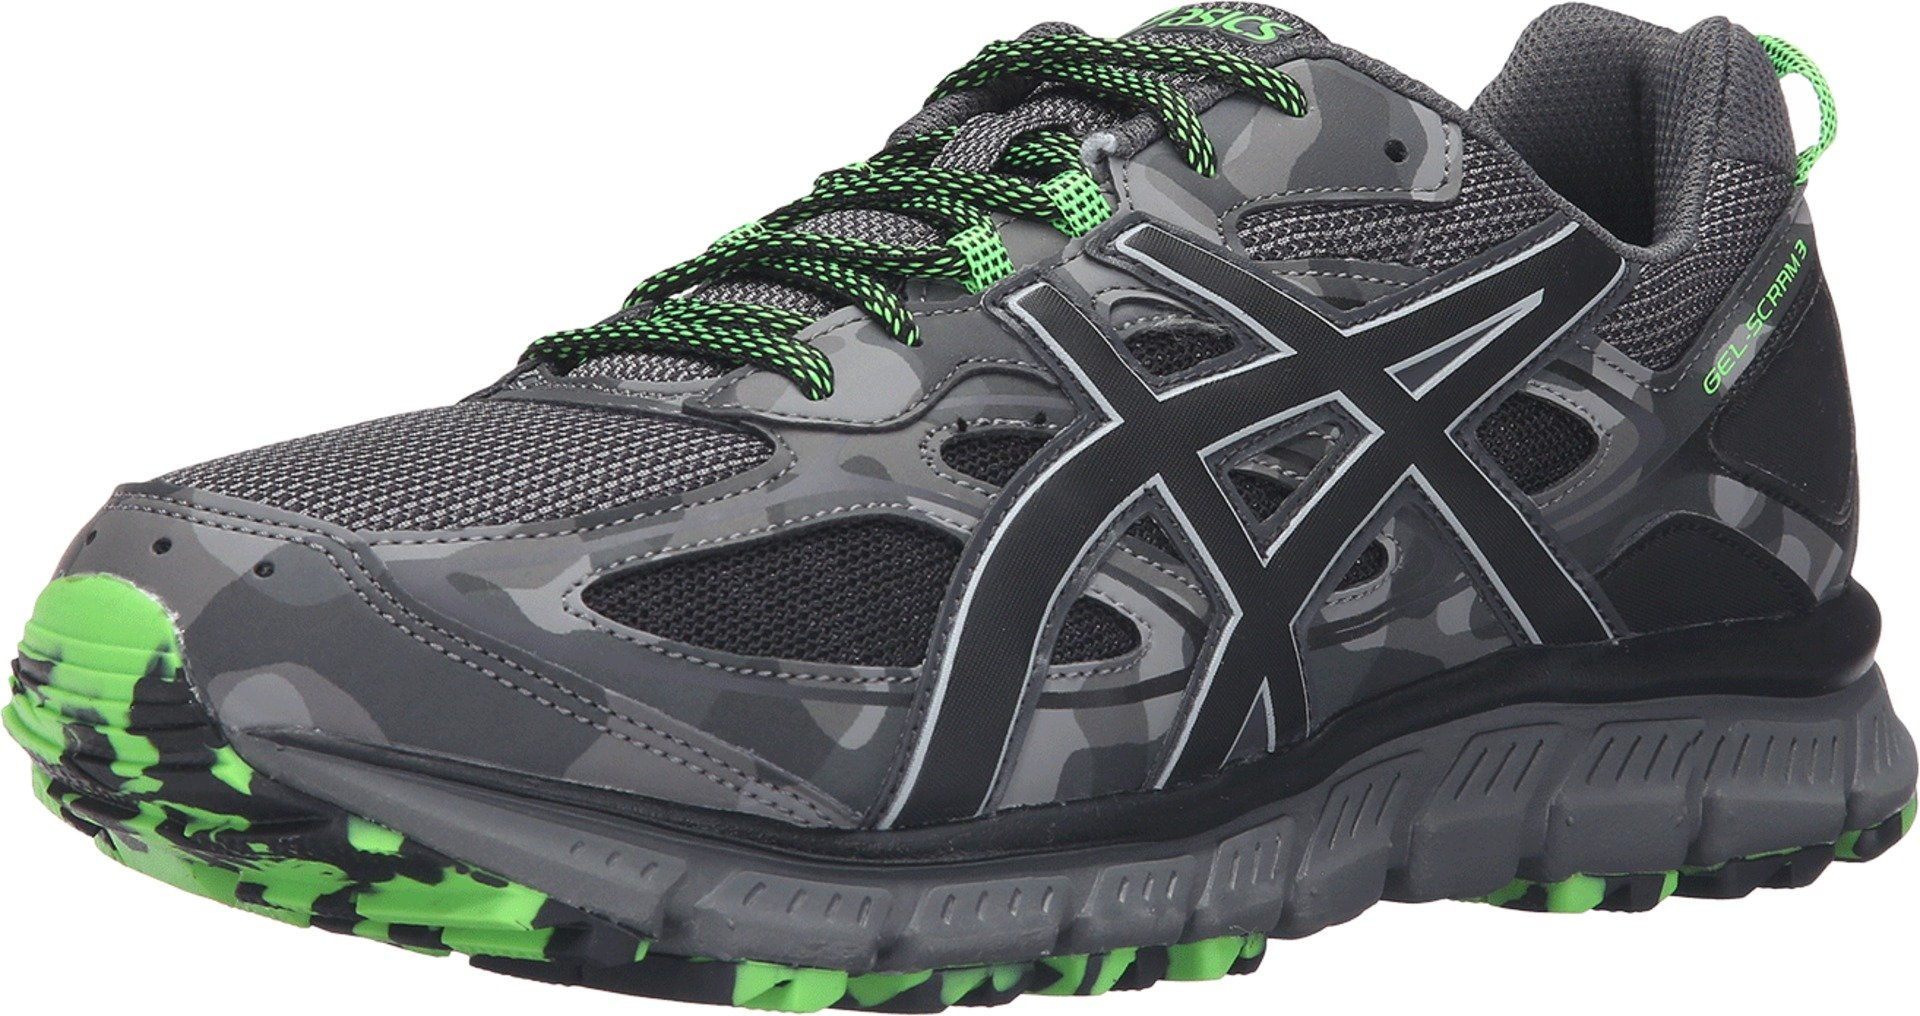 ASICS Men's Gel-Scram 3 Trail Runner, Carbon/Black/Green Gecko, 10 M US